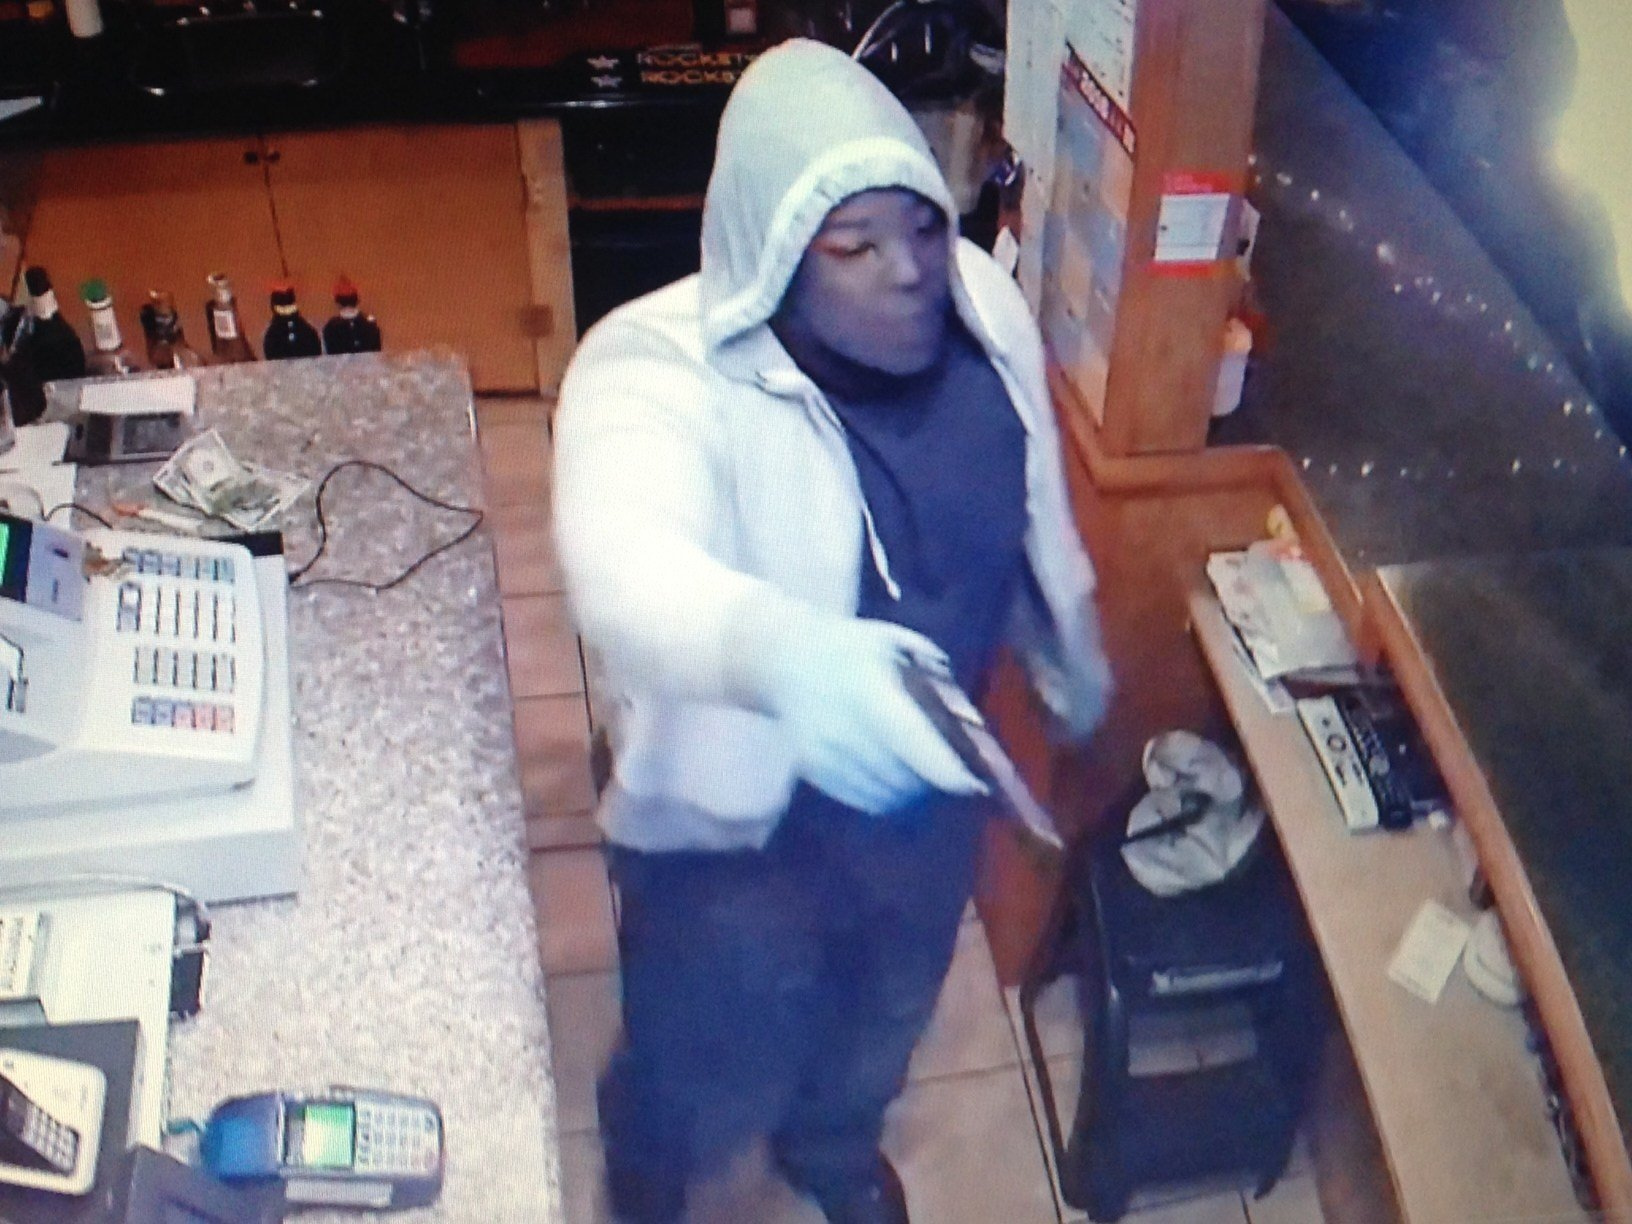 Another surveillance image showing the suspect who robbed Andy's Bar Thursday night.